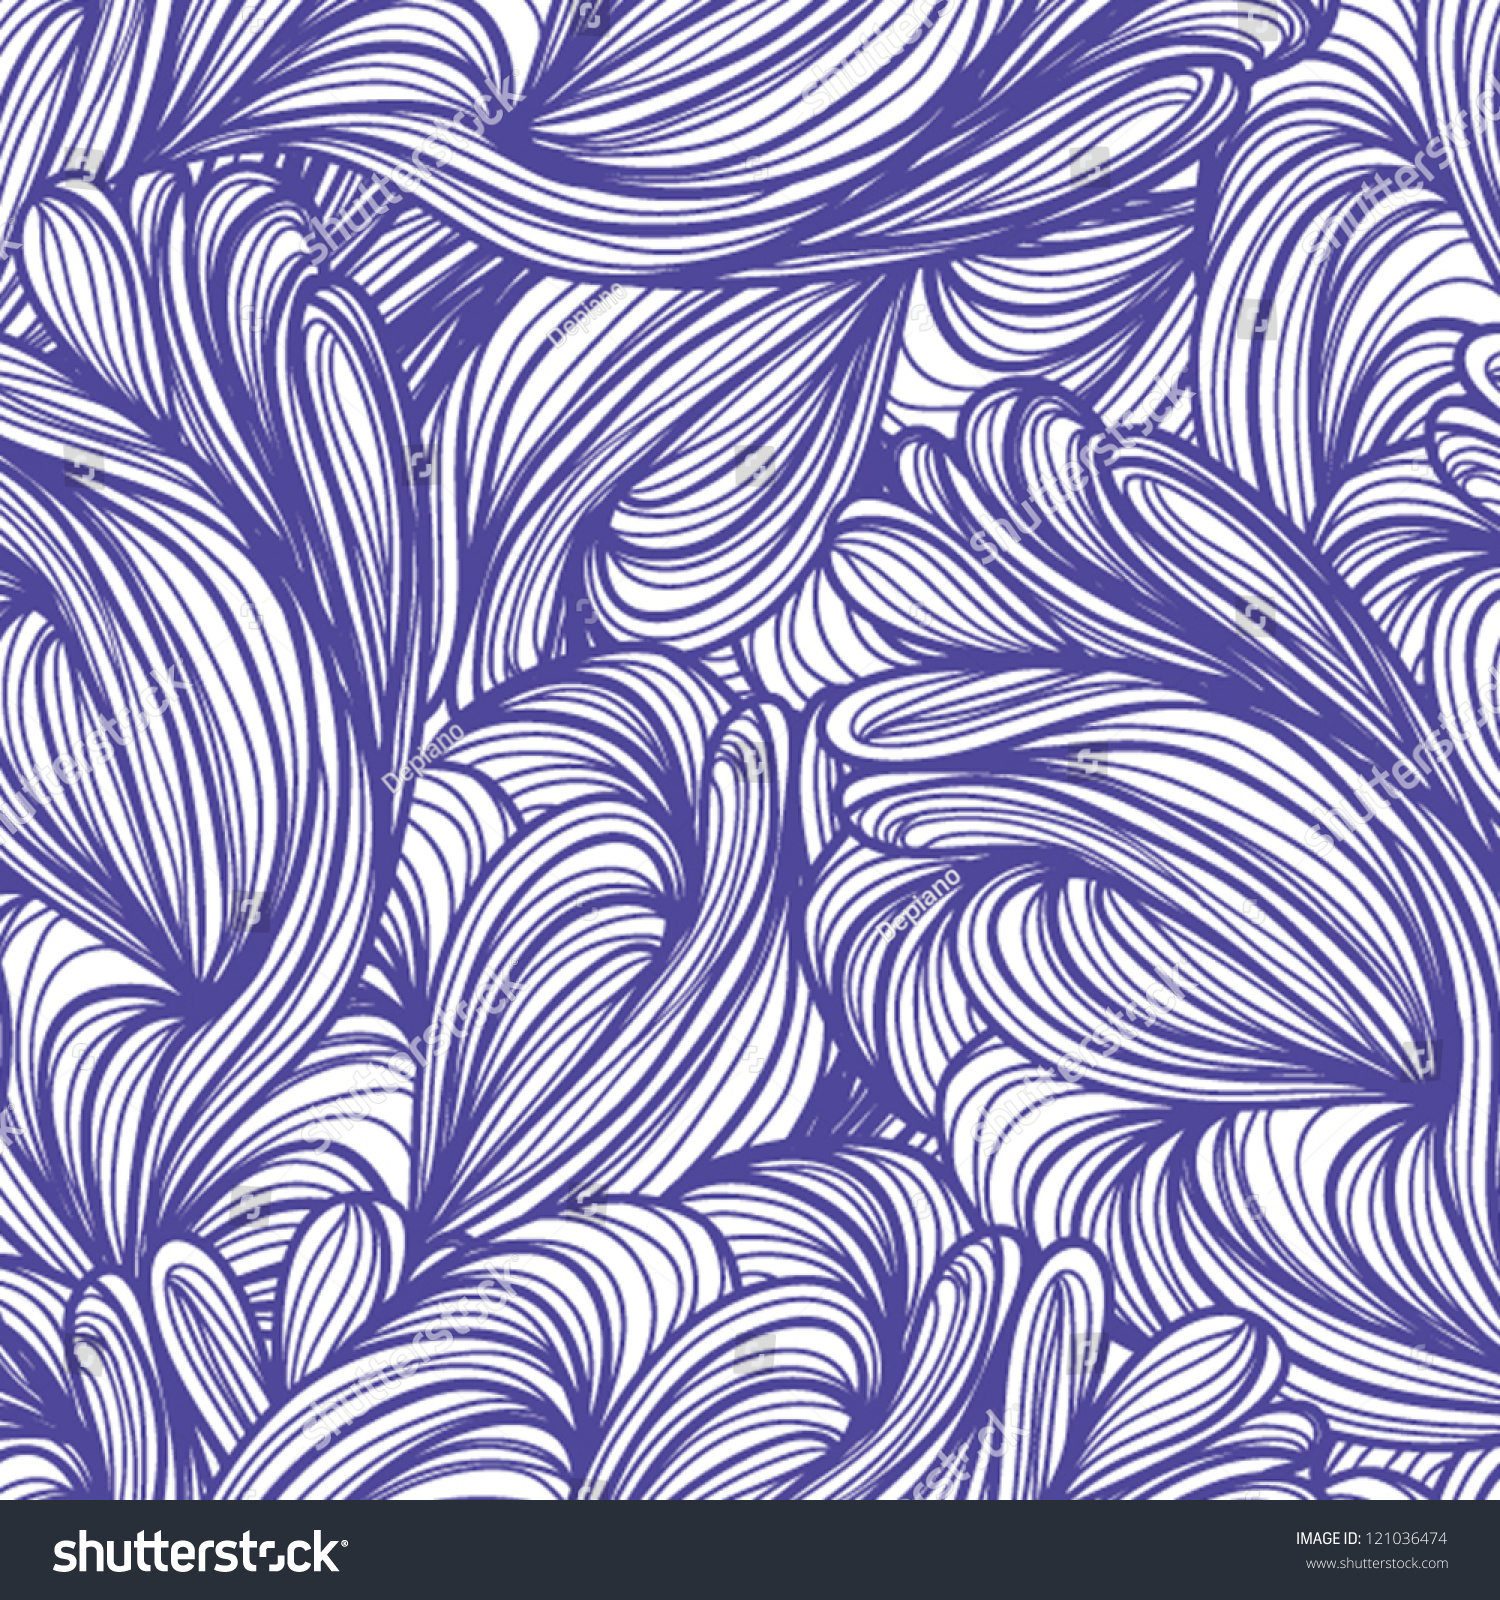 Seamless Abstract Pattern, Waves Background, Wallpaper